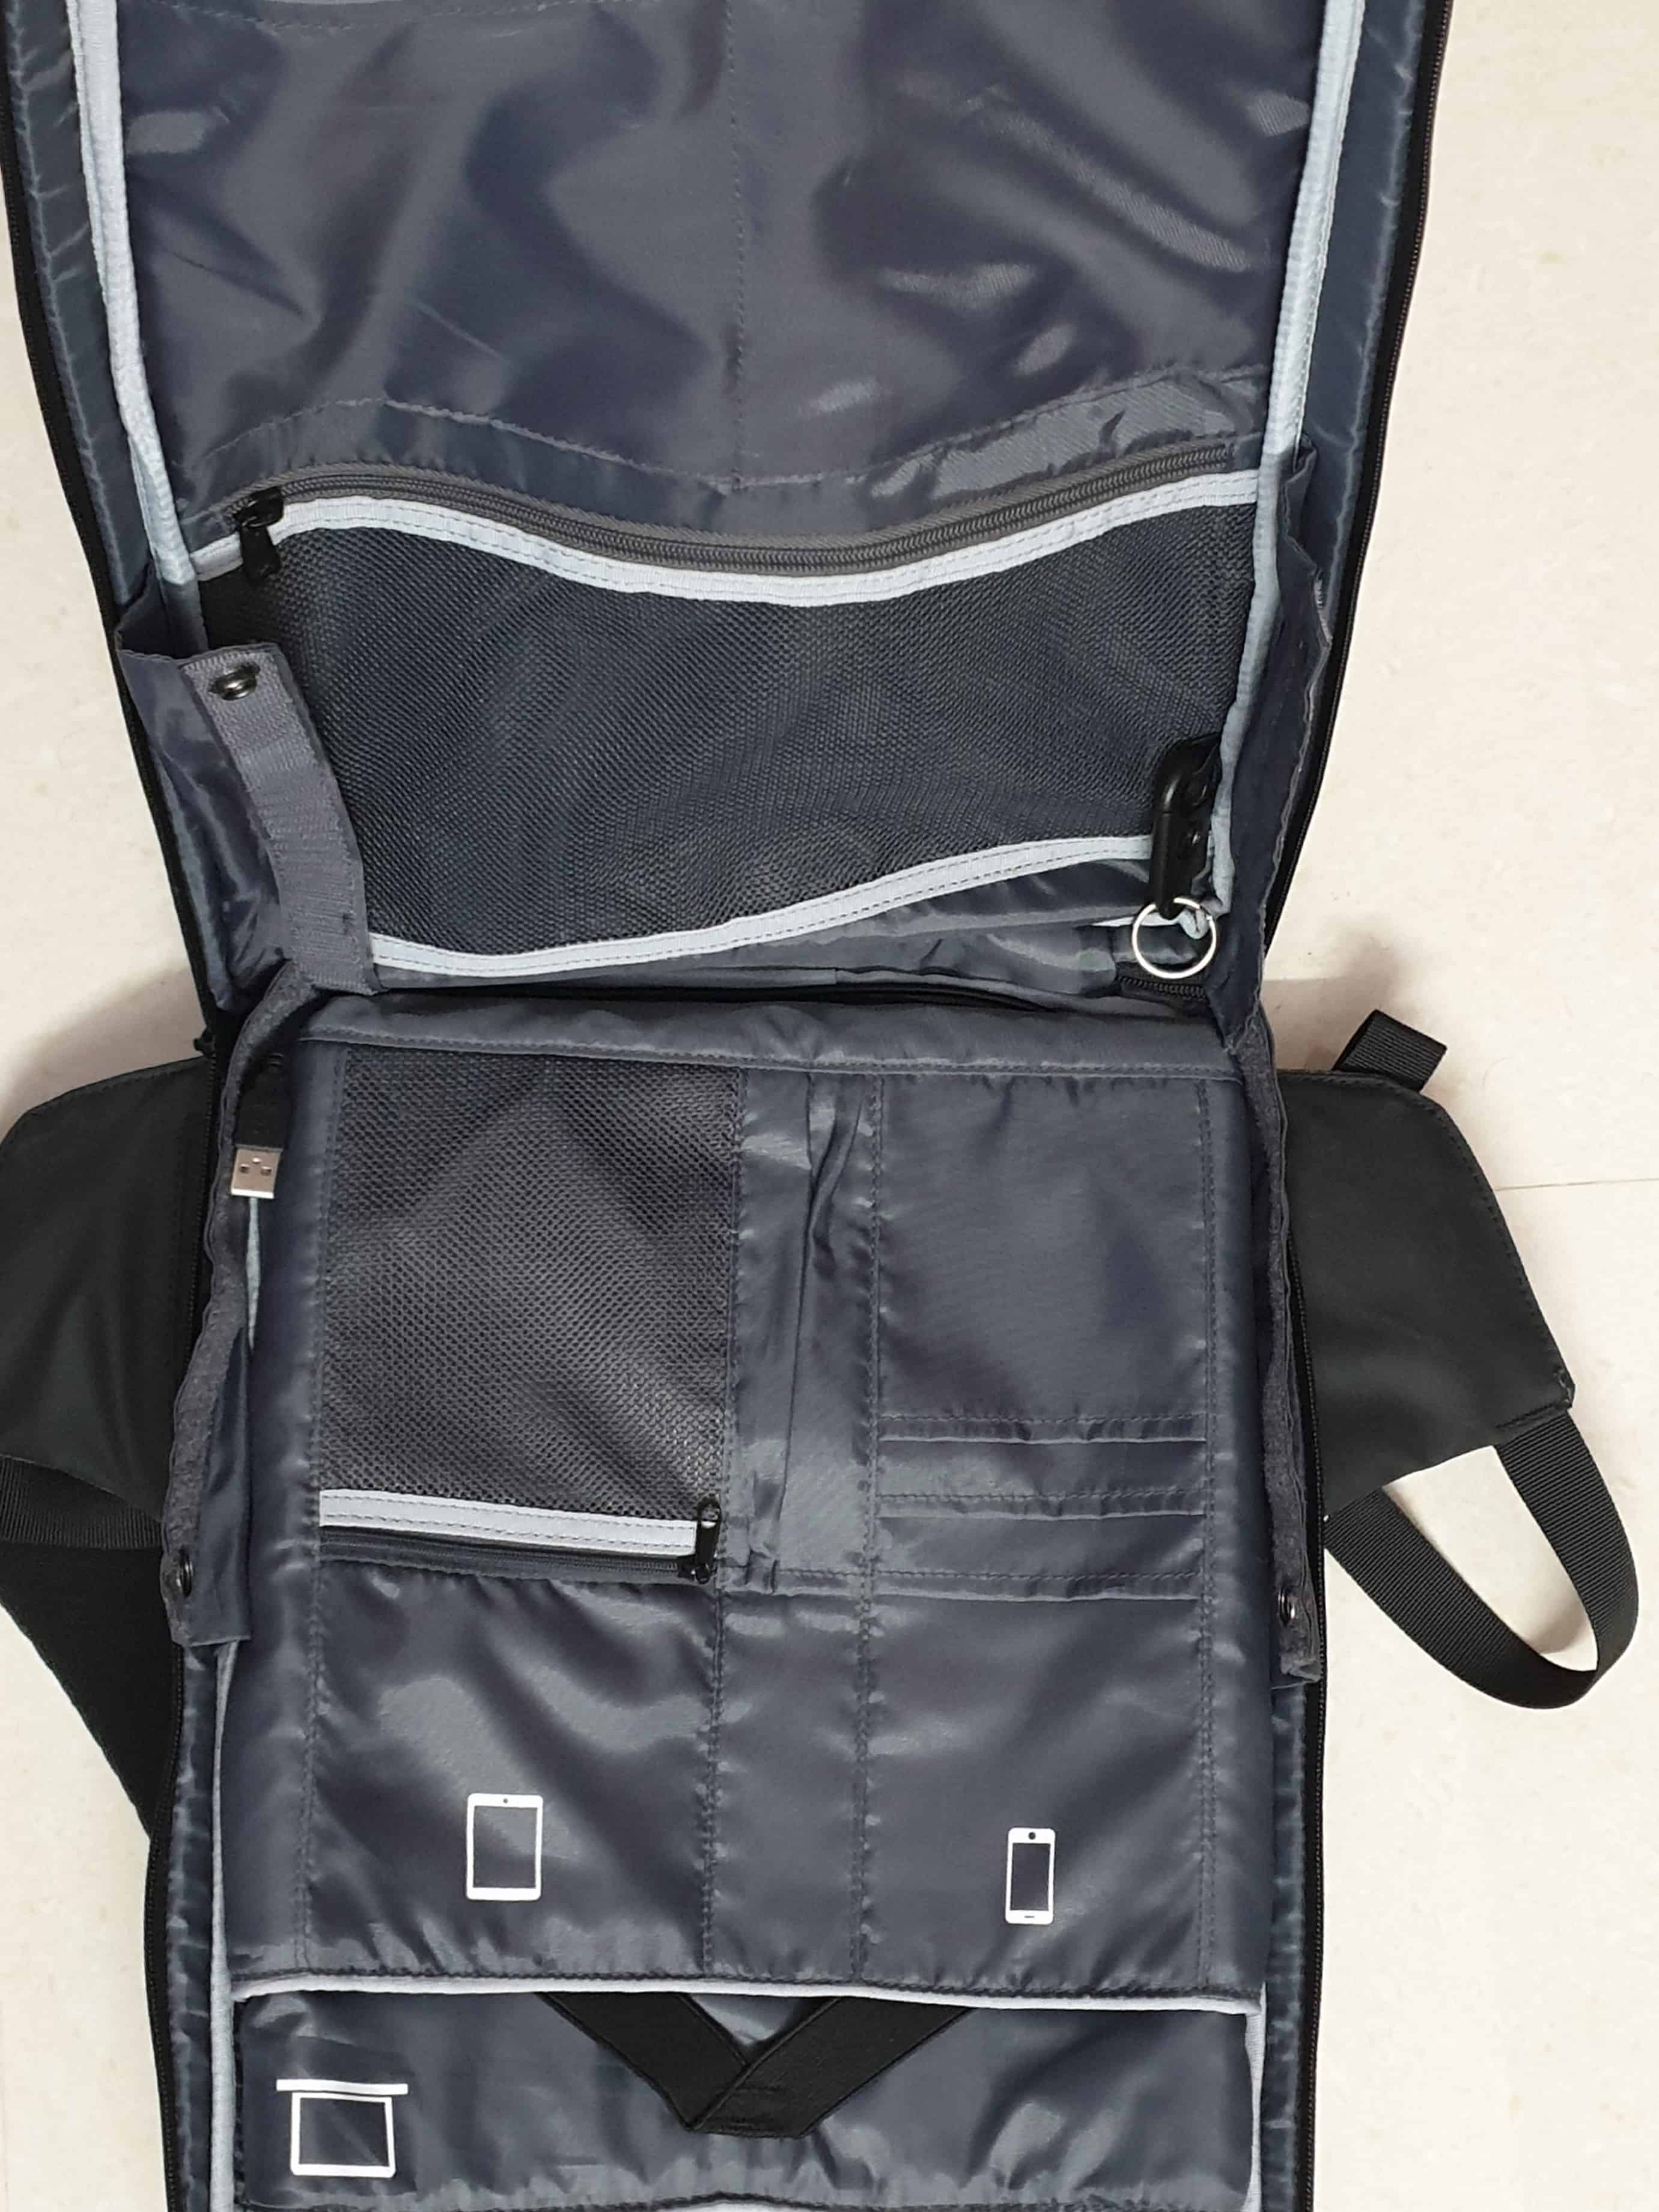 Neweex Backpack Review - Now you can Travel with Style! - 4